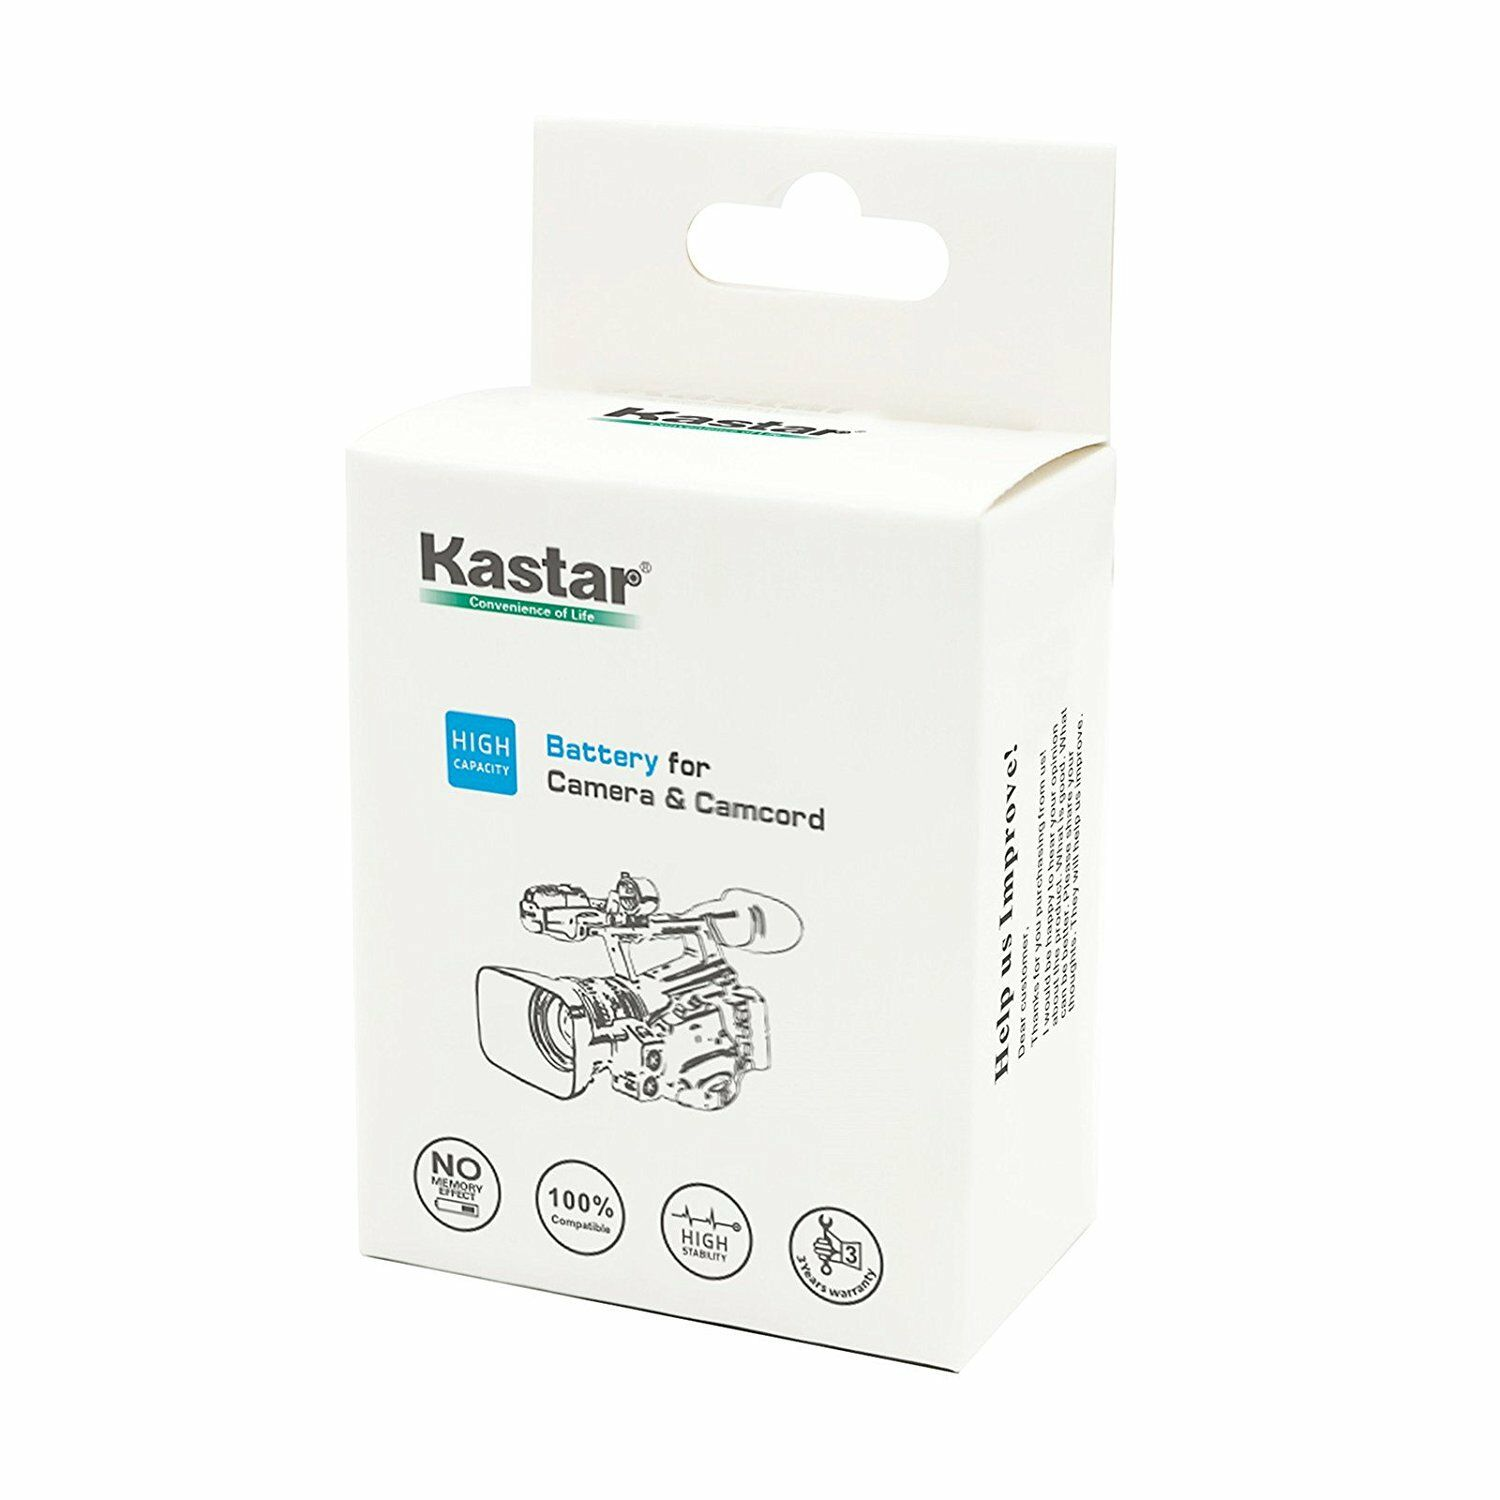 Kastar F980 Battery LCD Charger For Sony NP-F960 PLM-100 PLM-50 PLM-A35 PLM-A55 - $7.99